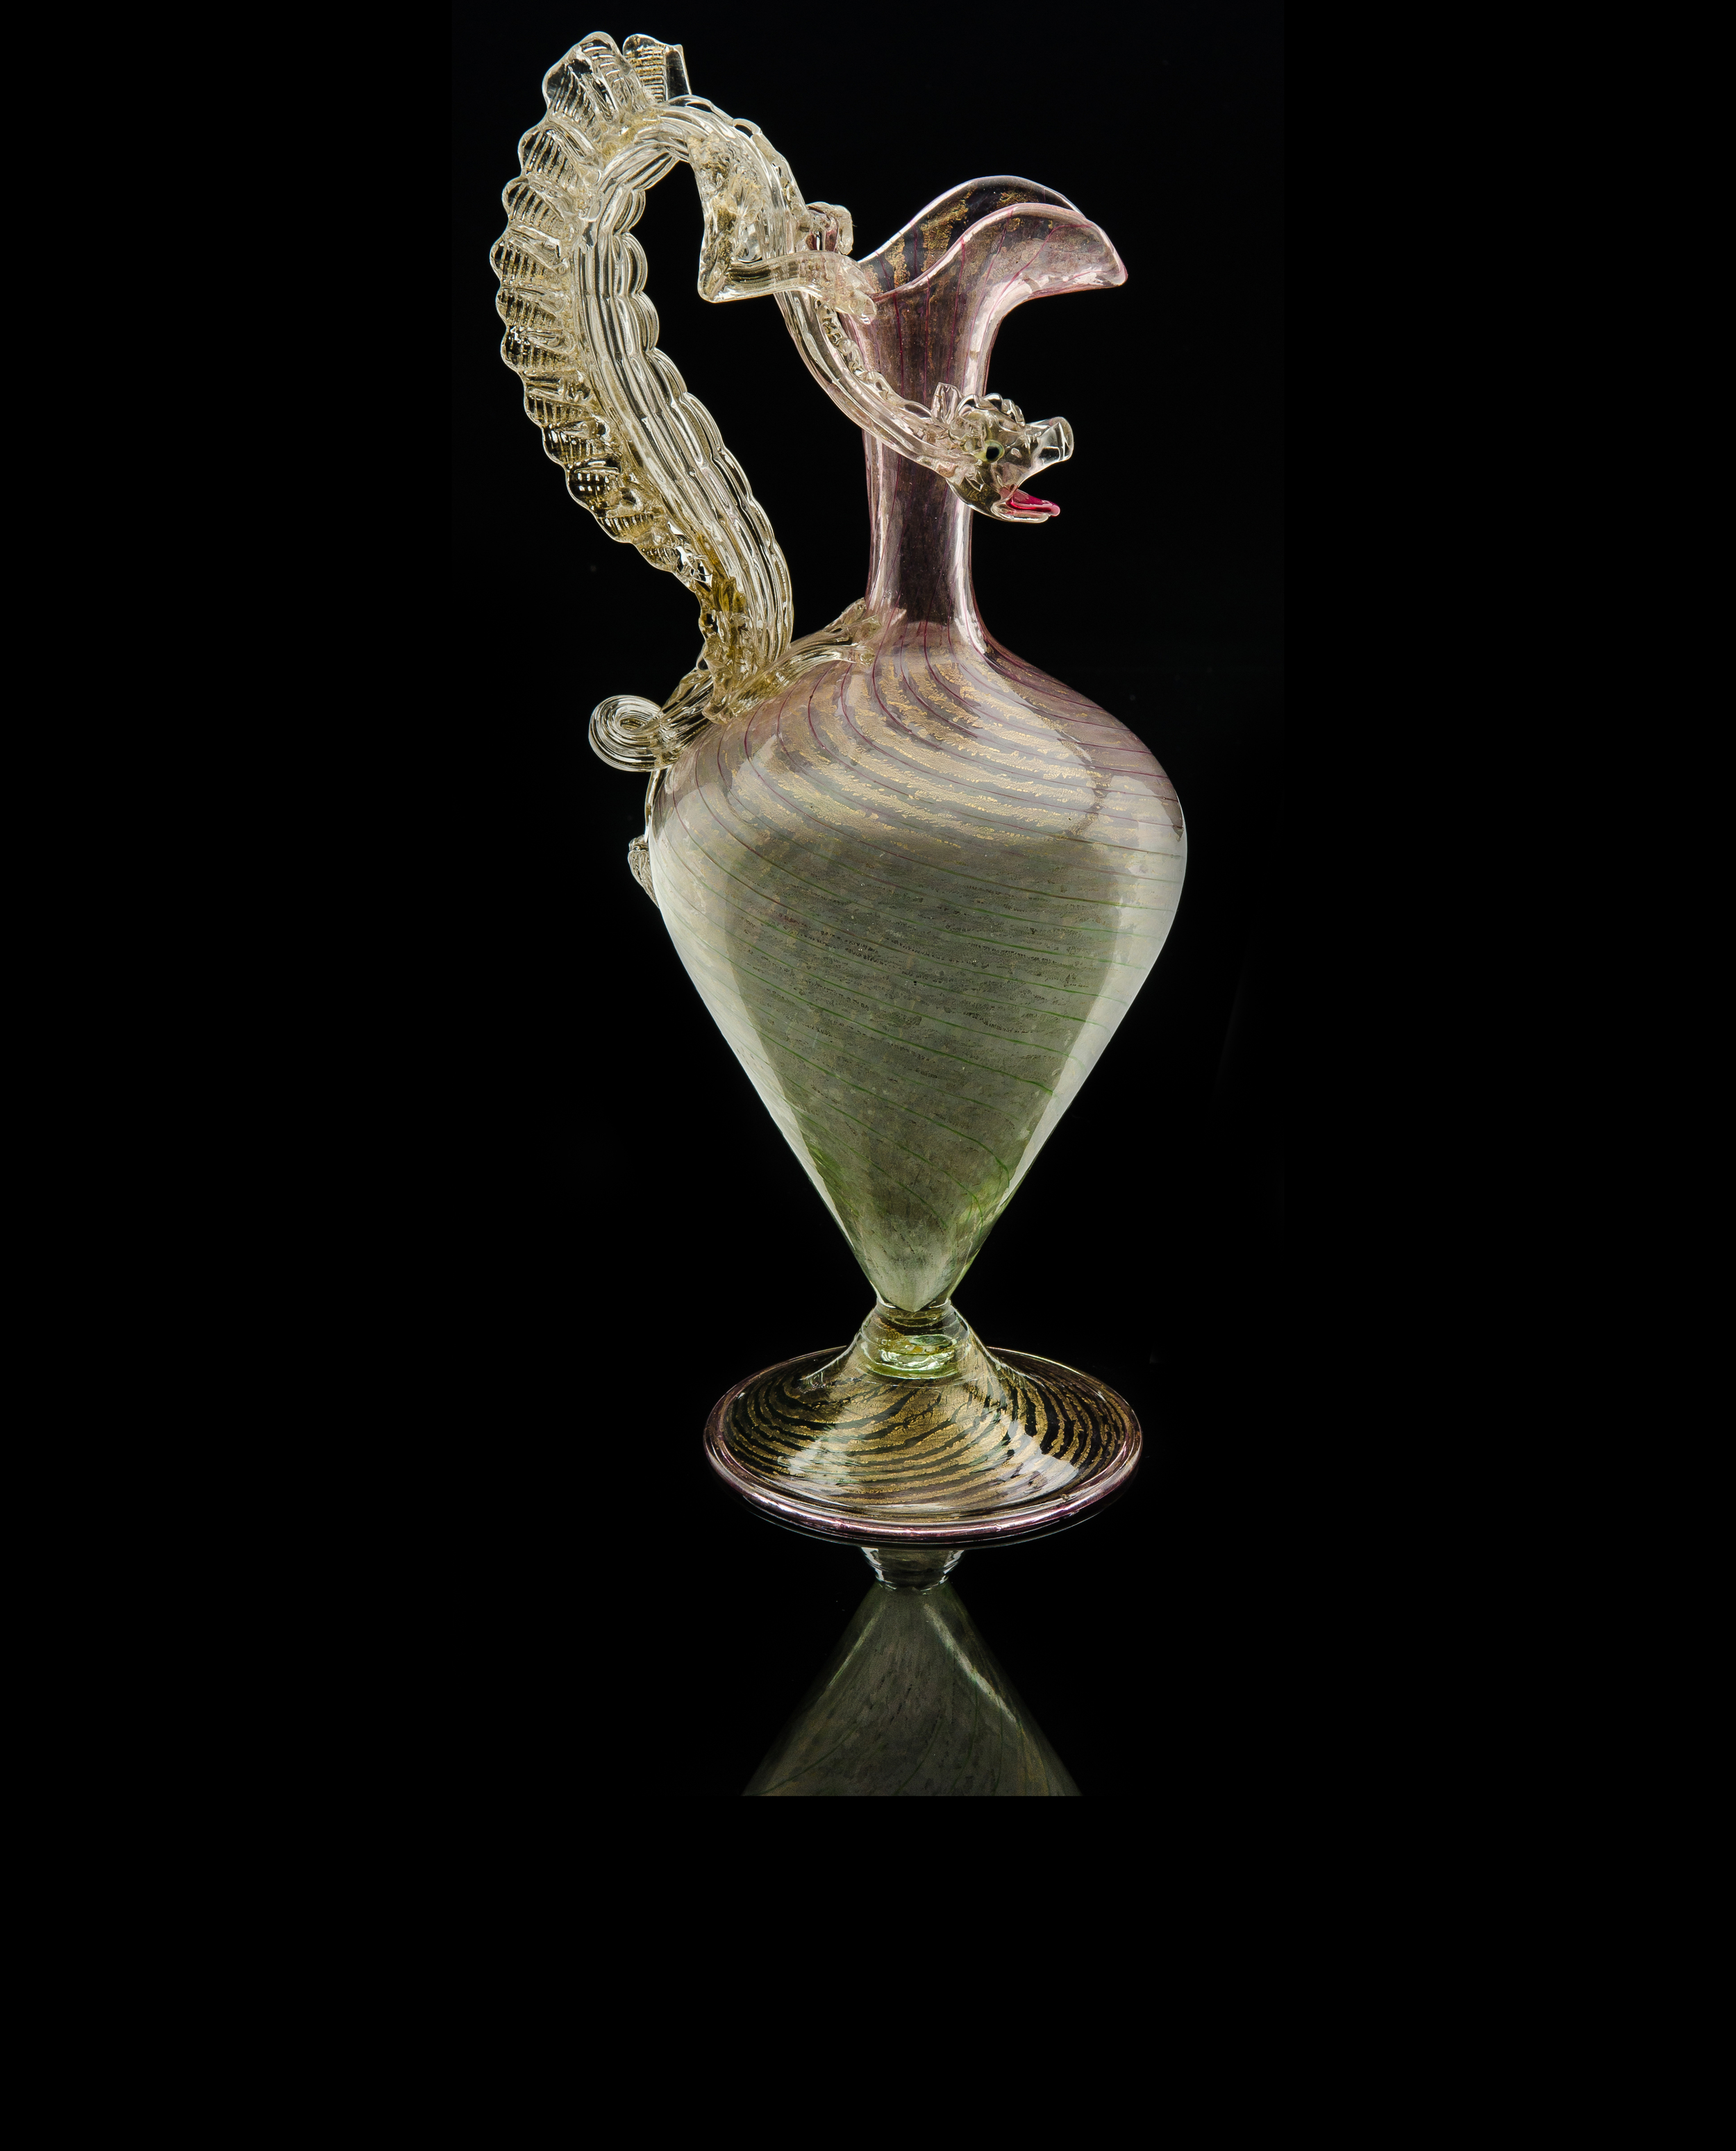 Salviati and Company, Pink and Green Pitcher with Dragon Handle (circa 1890, glass), VV.268